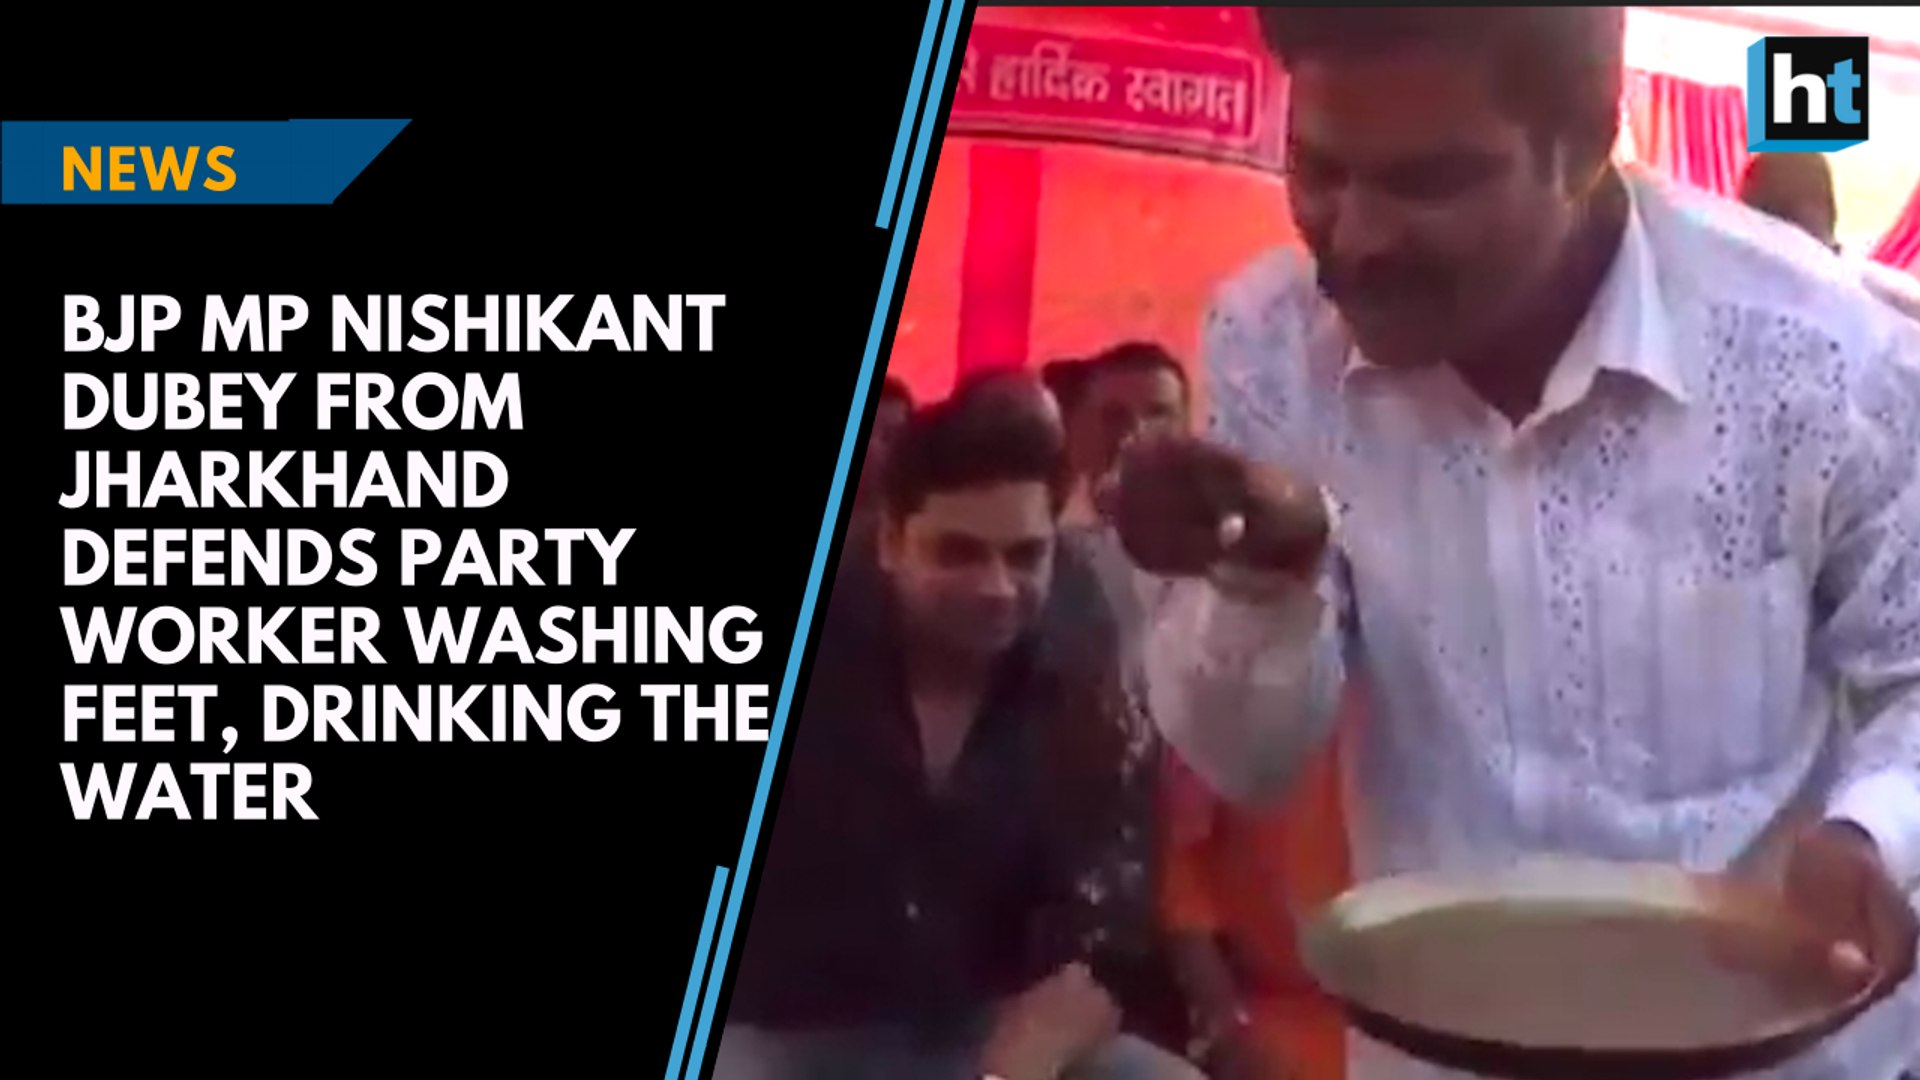 BJP MP Nishikant Dubey defends party worker washing feet, drinking soiled water